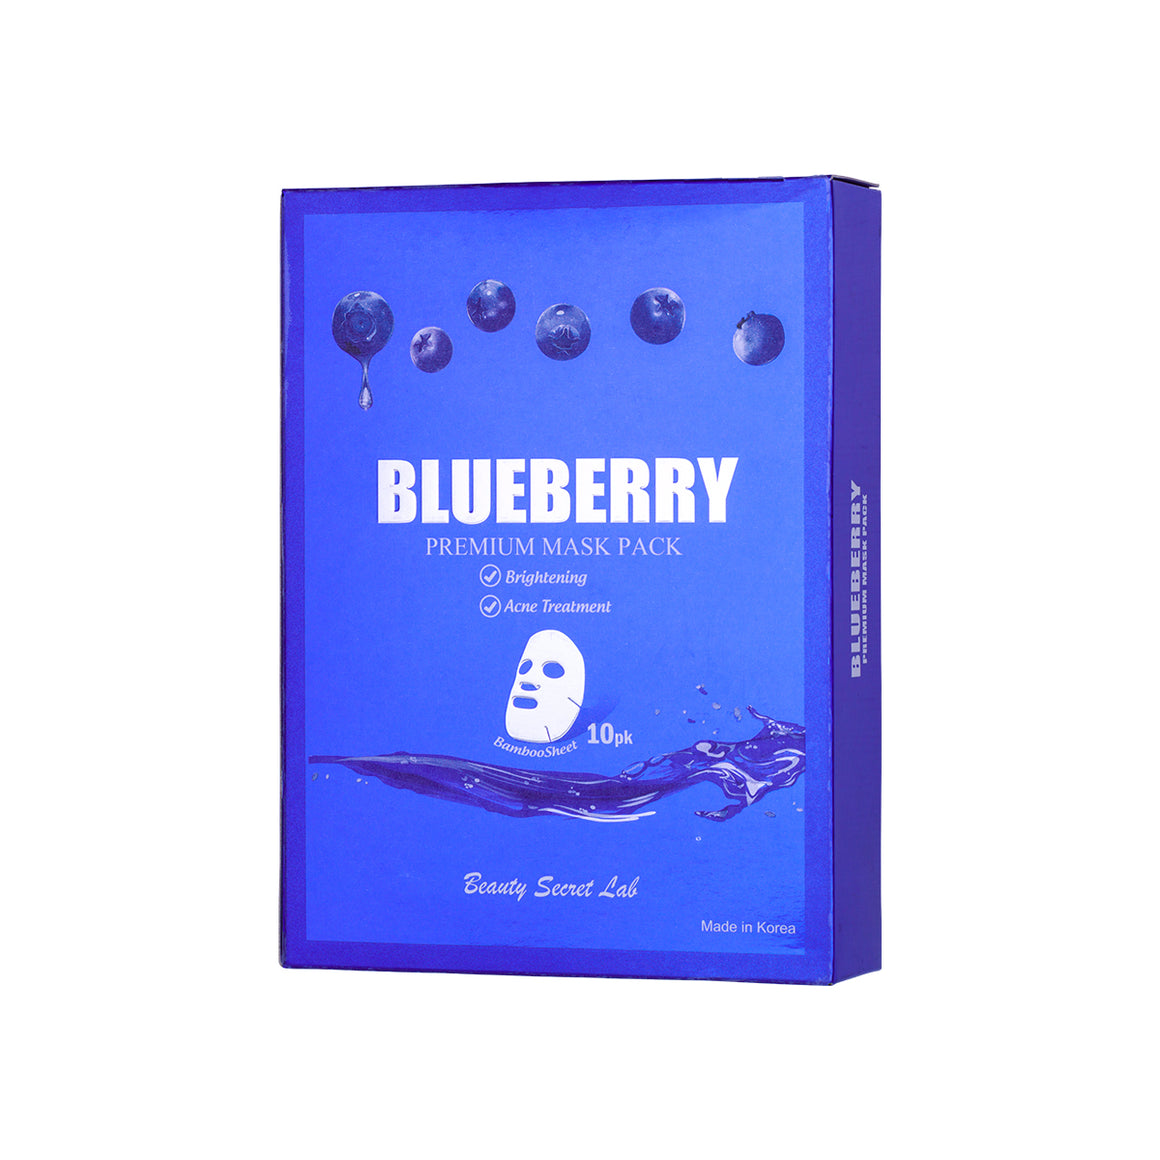 Blueberry Premium Mask